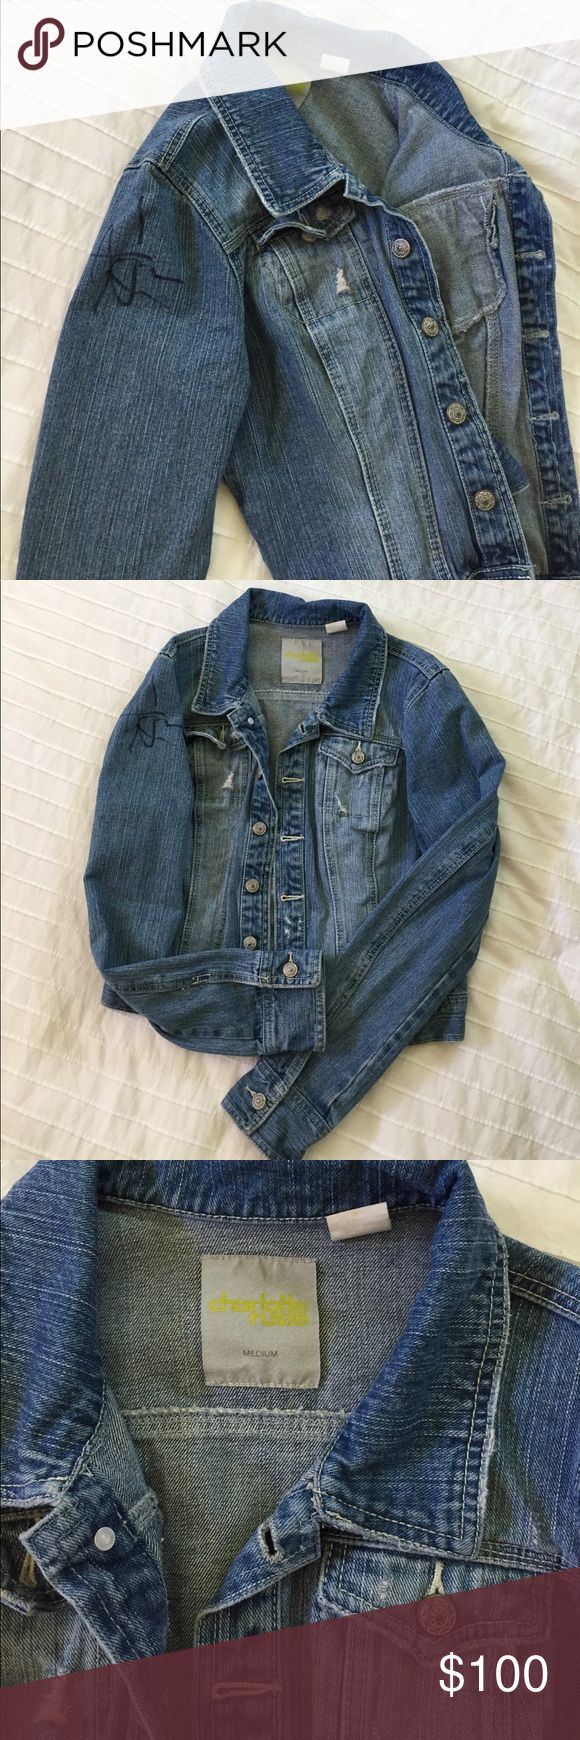 Jean jacket signed by Brad Hargreaves Signed by Drummer for Third Eye Blind at concert a few years ago. Charlotte Russe jean jacket. Only worn once for the concert & hasn't been worn since. Increased price bc of the autograph. Make me an offer if you're a Third Eye Blind fan! 🙂 Charlotte Russe Jackets & Coats Jean Jackets